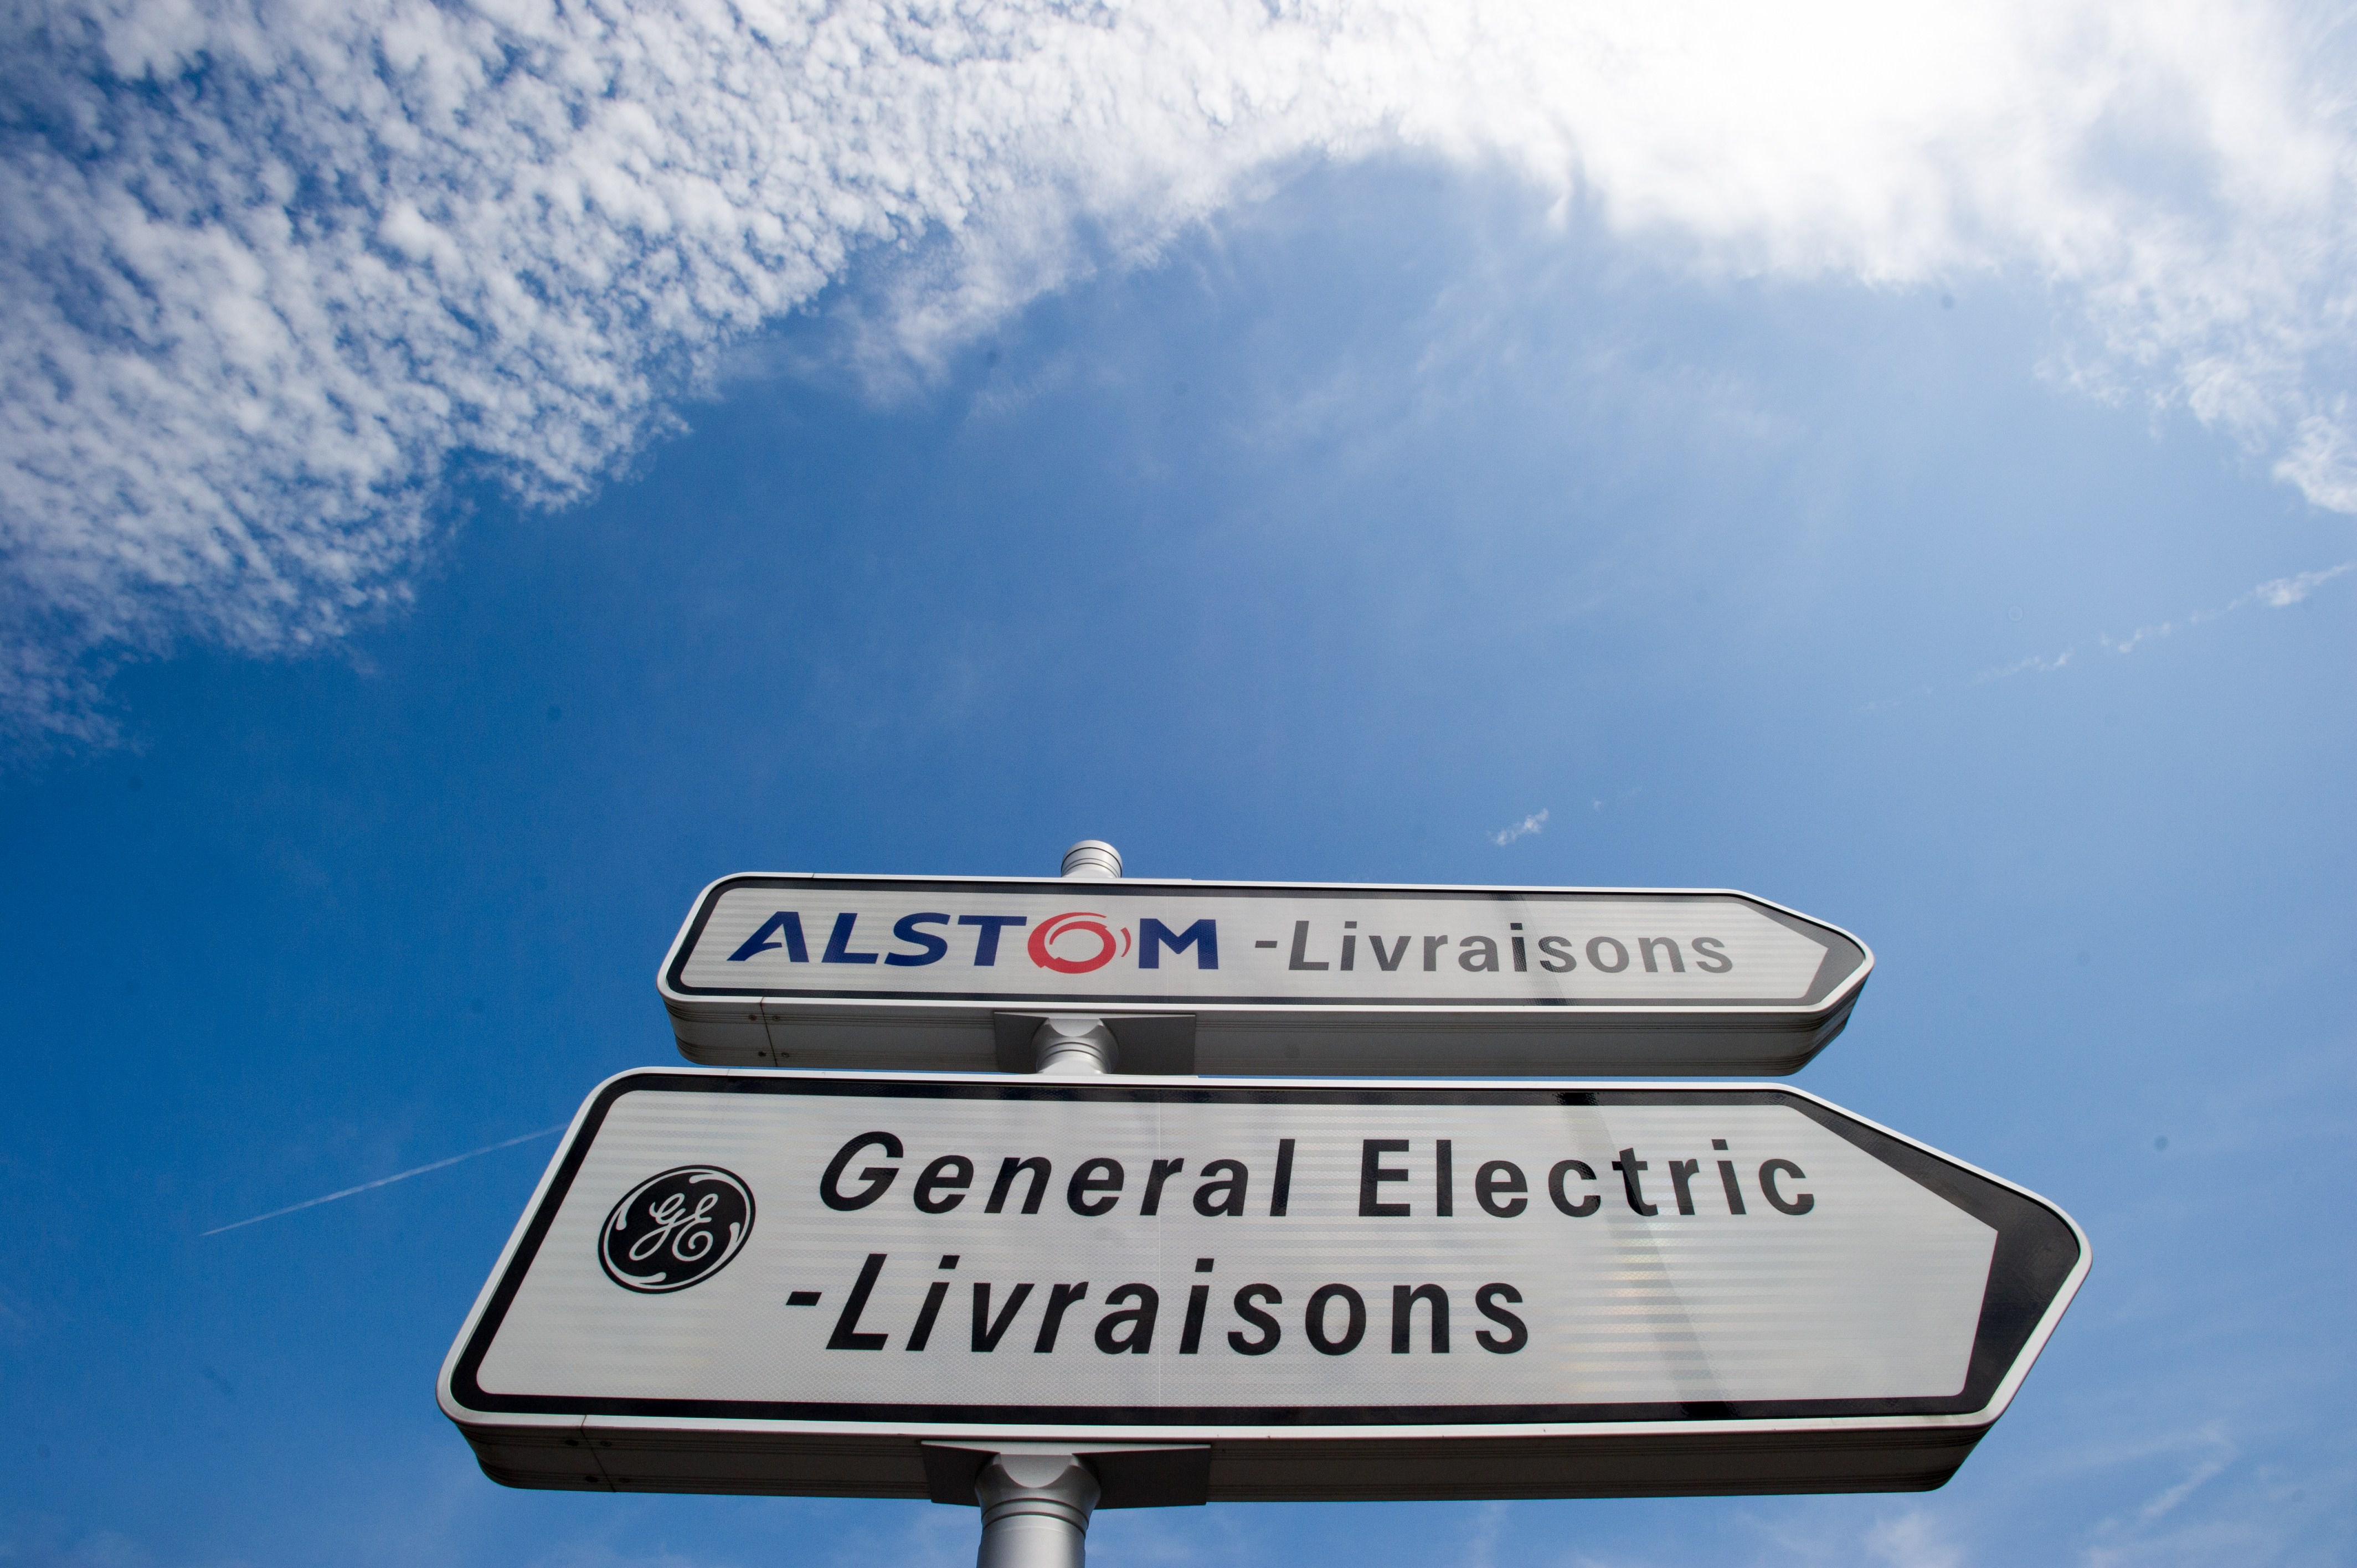 FRANCE-US-ENGINEERING-BUSINESS-ACQUISITION-GOVERNMENT-ALSTOM